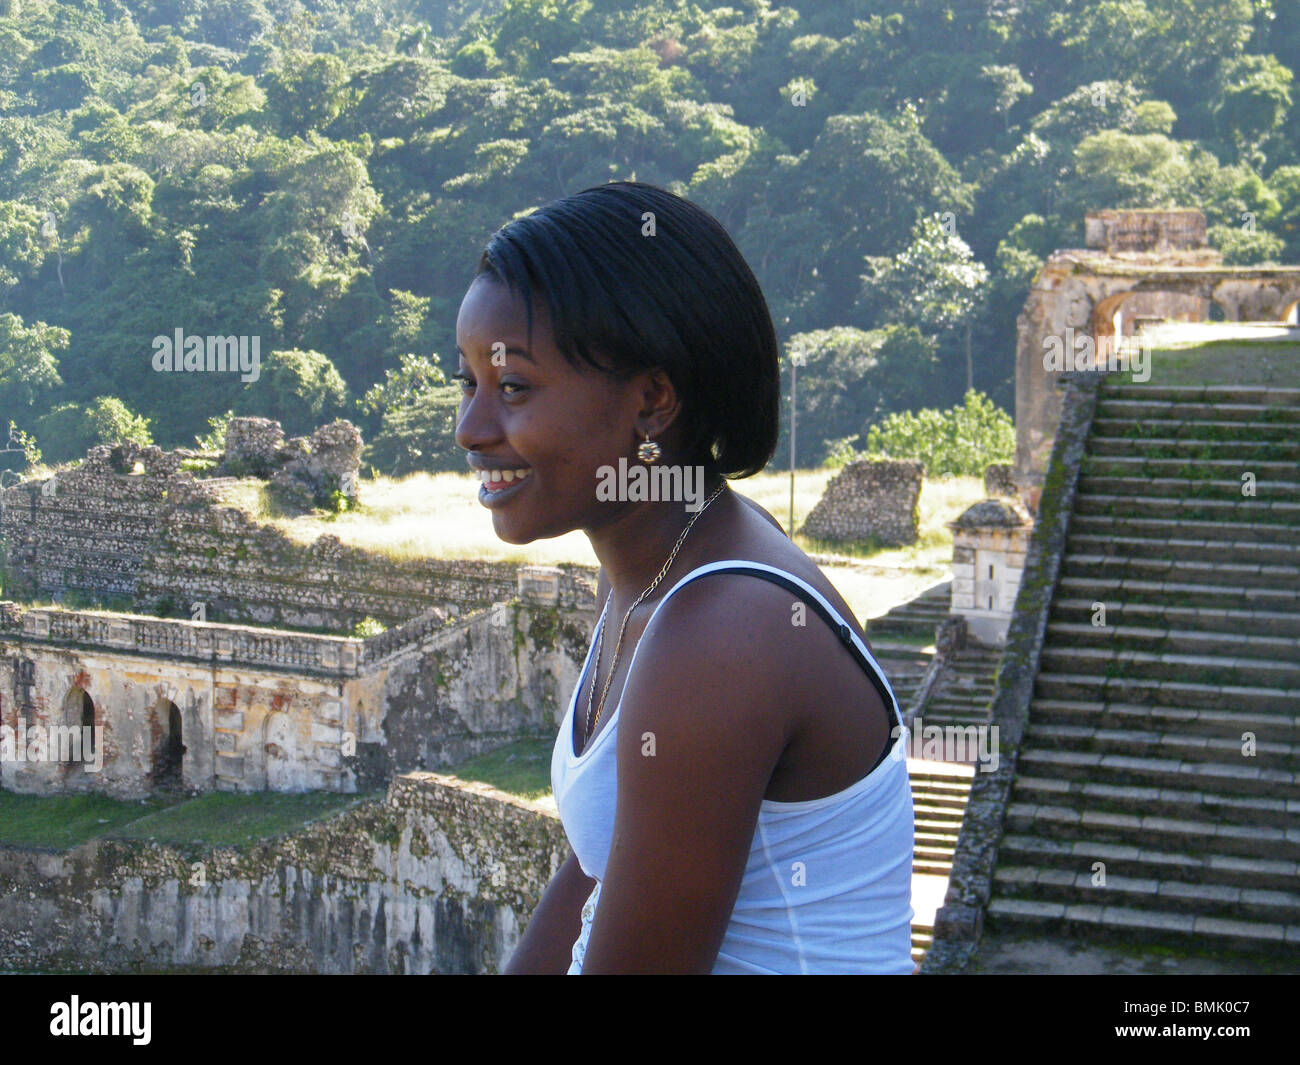 Portrait of a Haitian girl in the ruins of the Sans Souci Palace, near Cap Haitien, Haiti - Stock Image